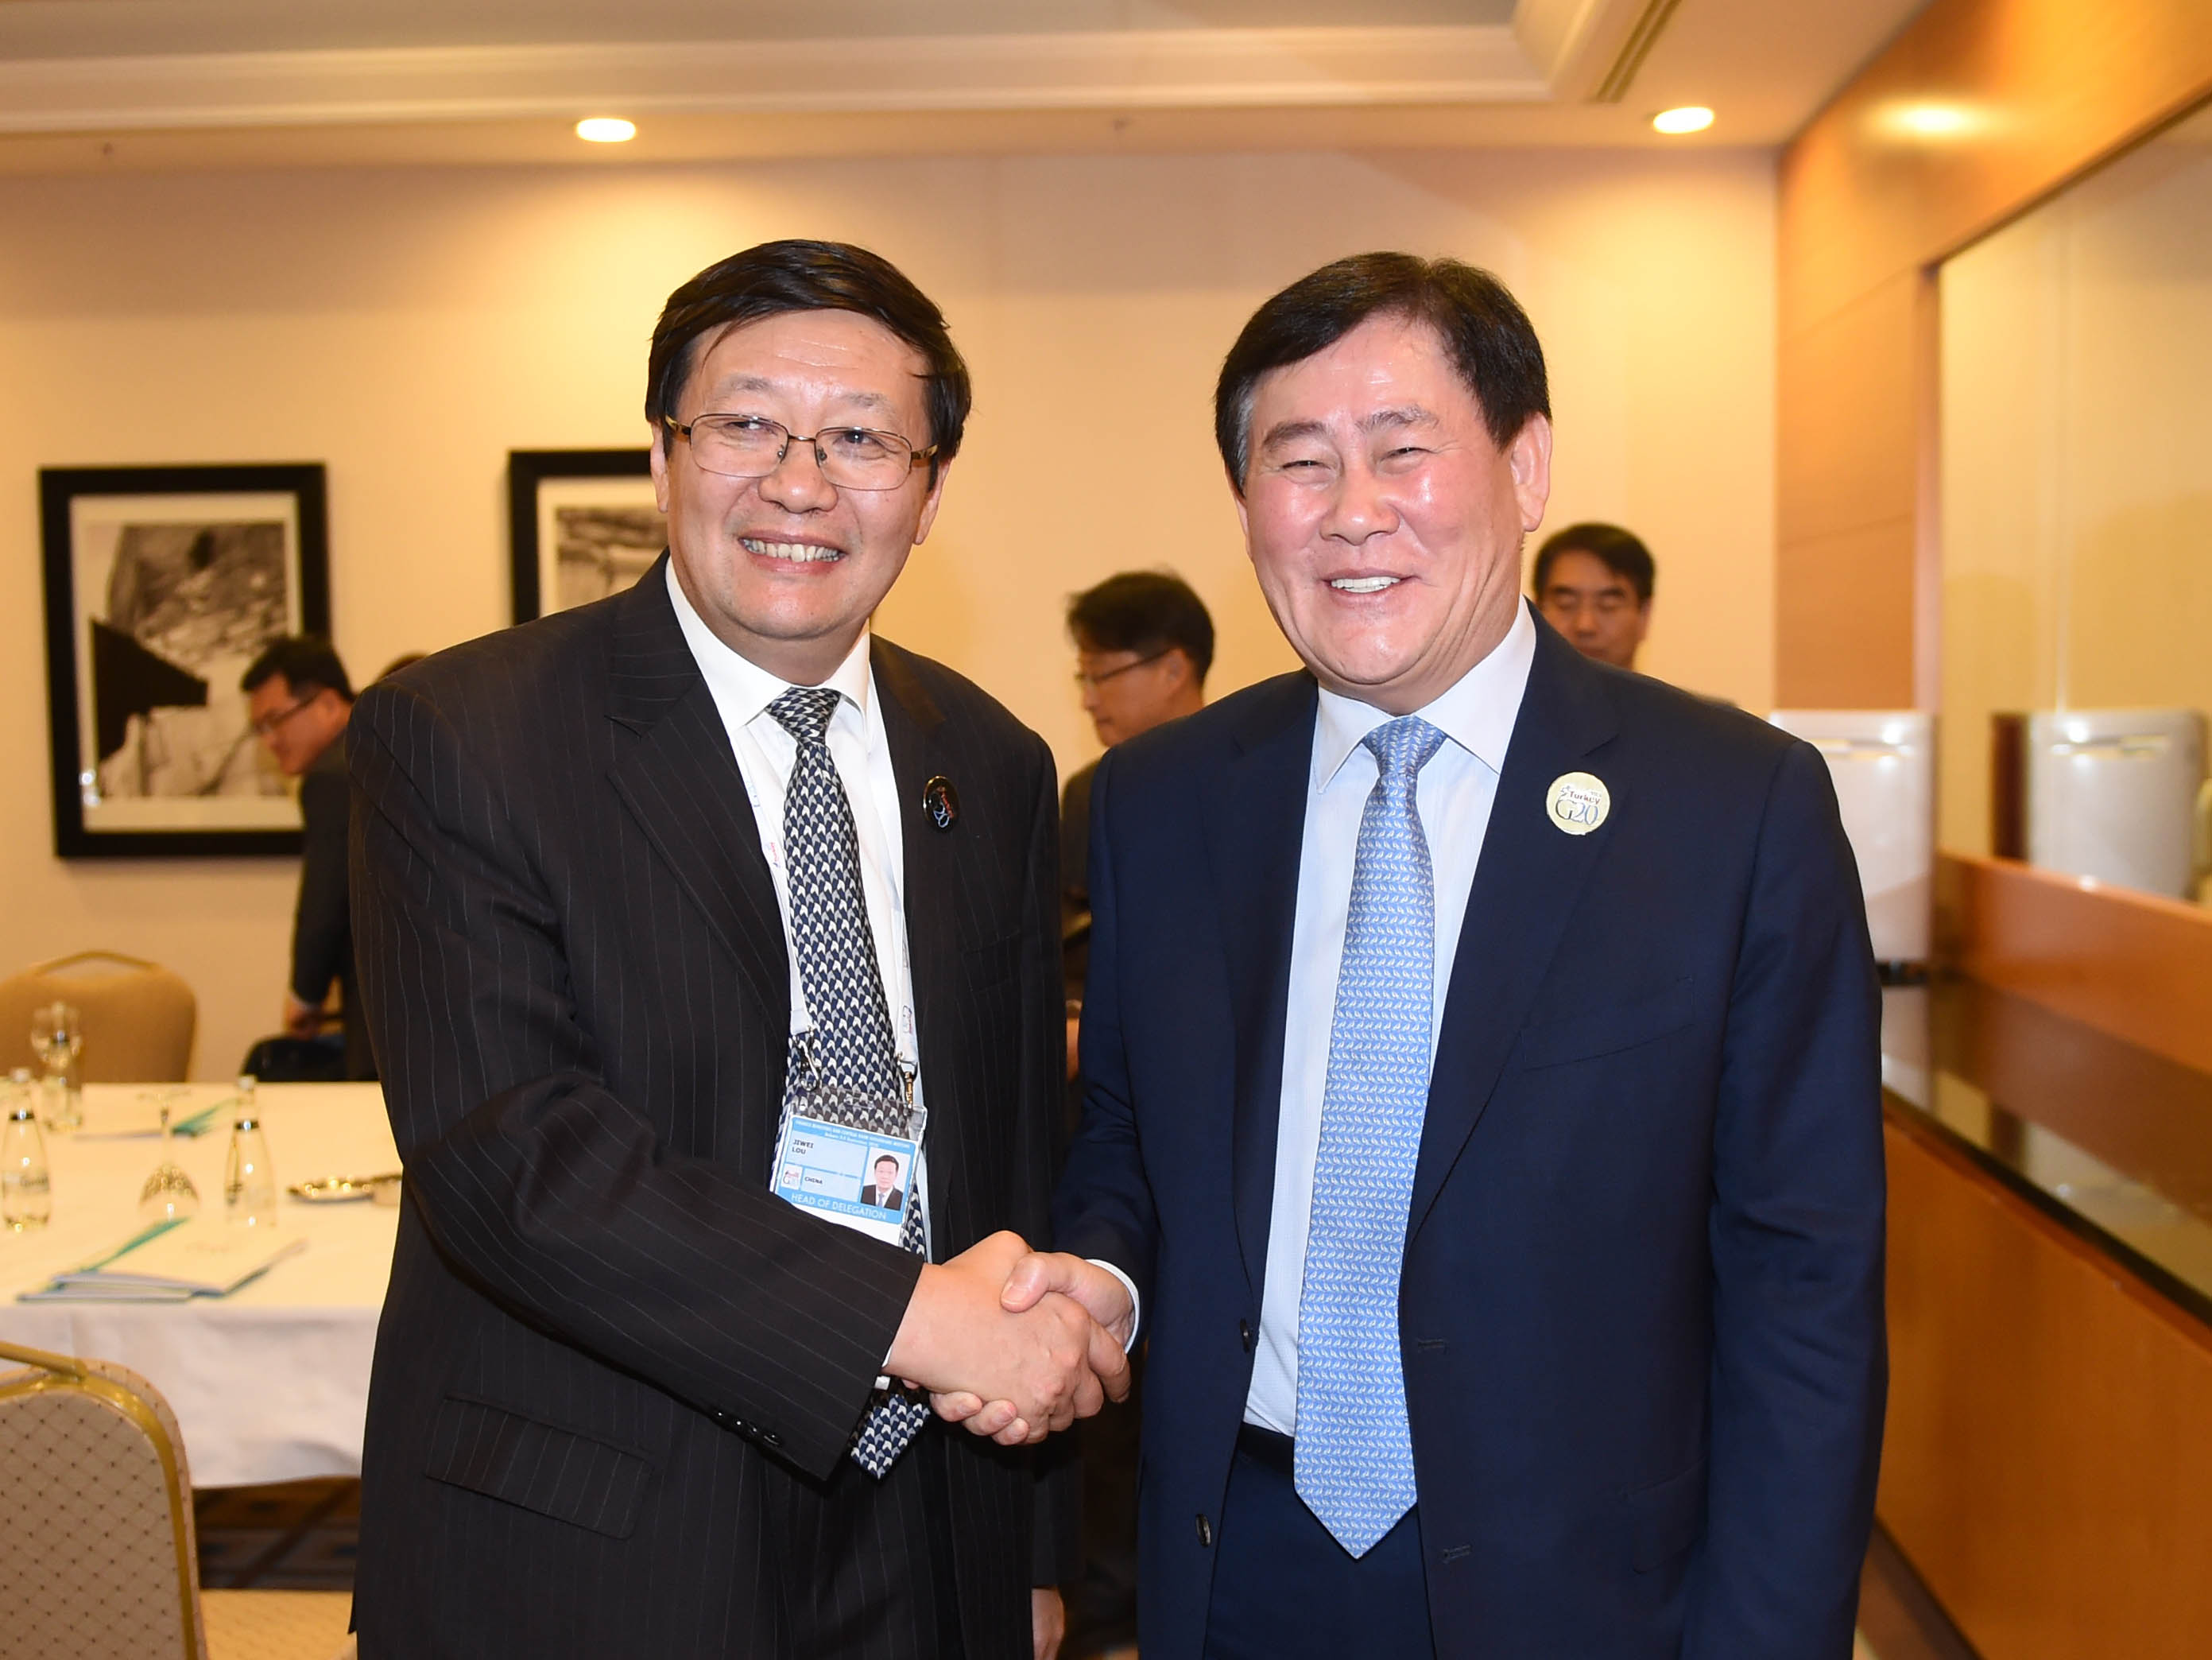 Deputy Prime Minister Choi meets with Chinese Finance Minister Lou Jiwei in Ankara, Turkey